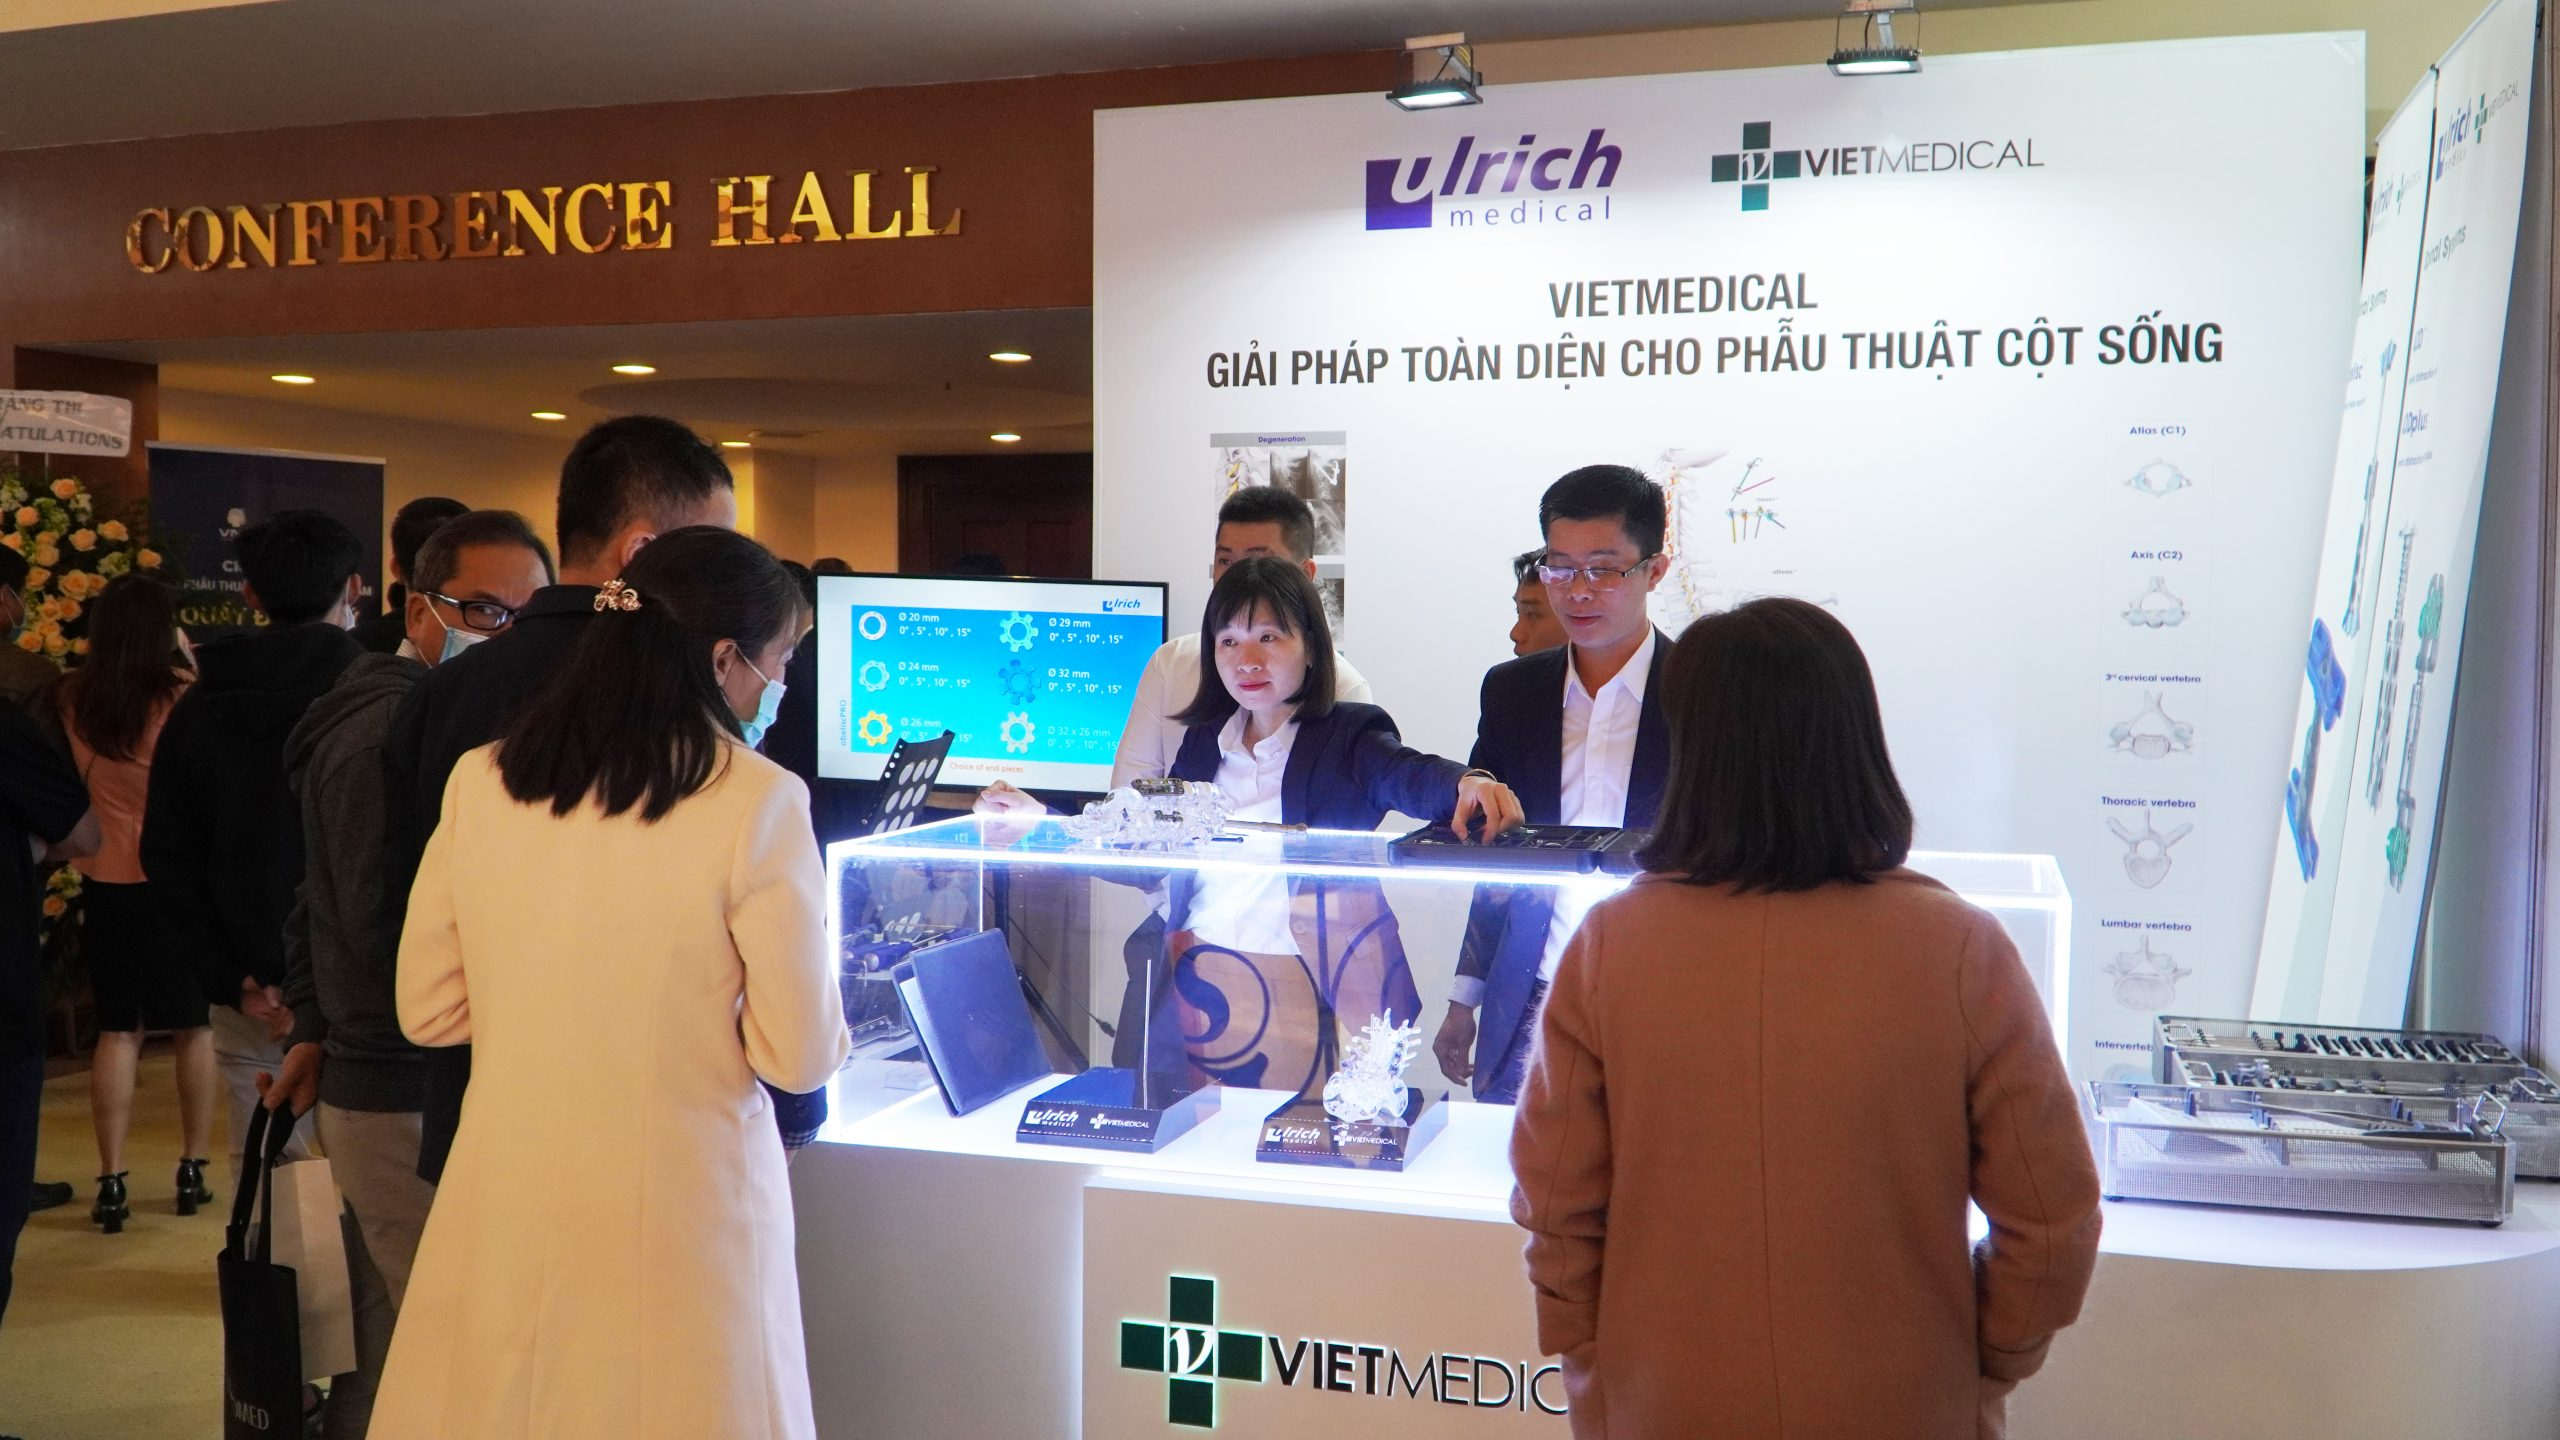 Vietmedical provides a comprehensive solution for spine surgery in Vietnam